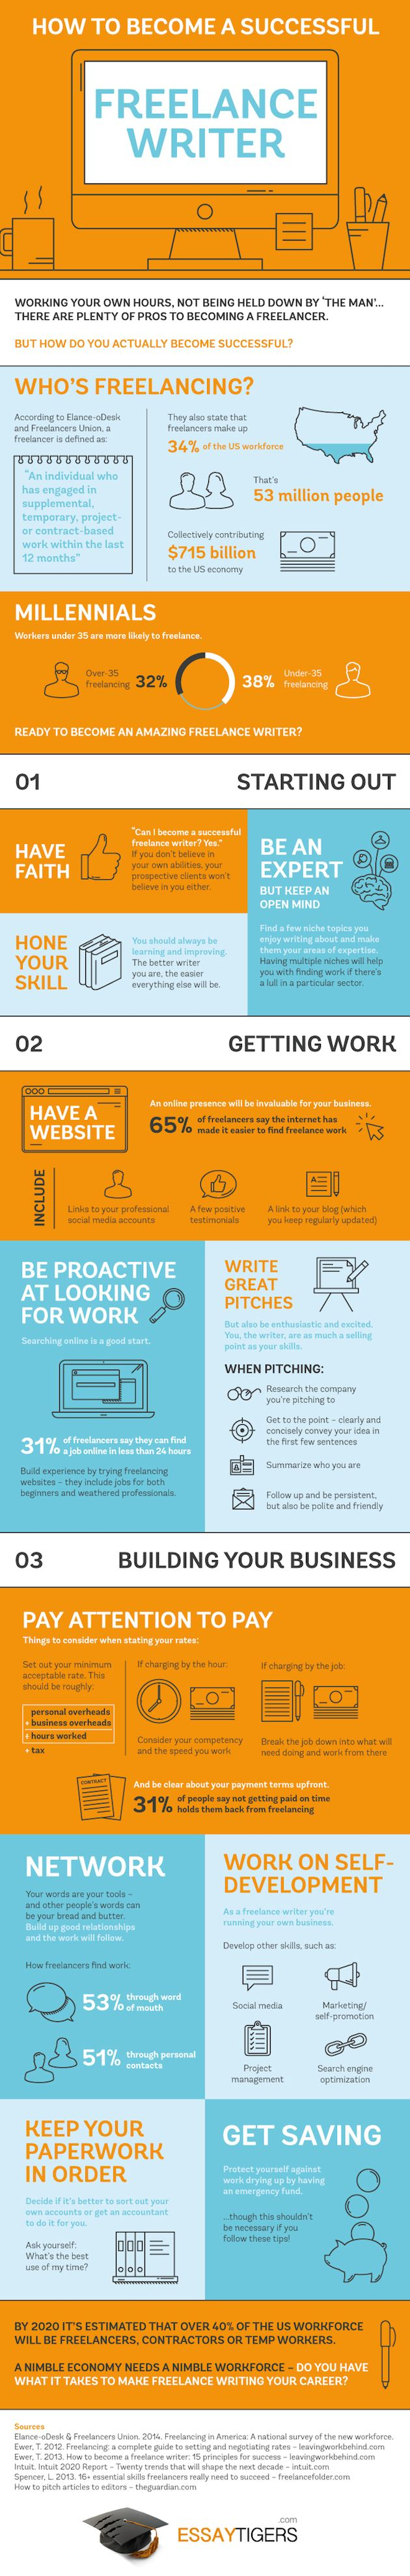 Infographic: How to Become a Successful Freelance Writer